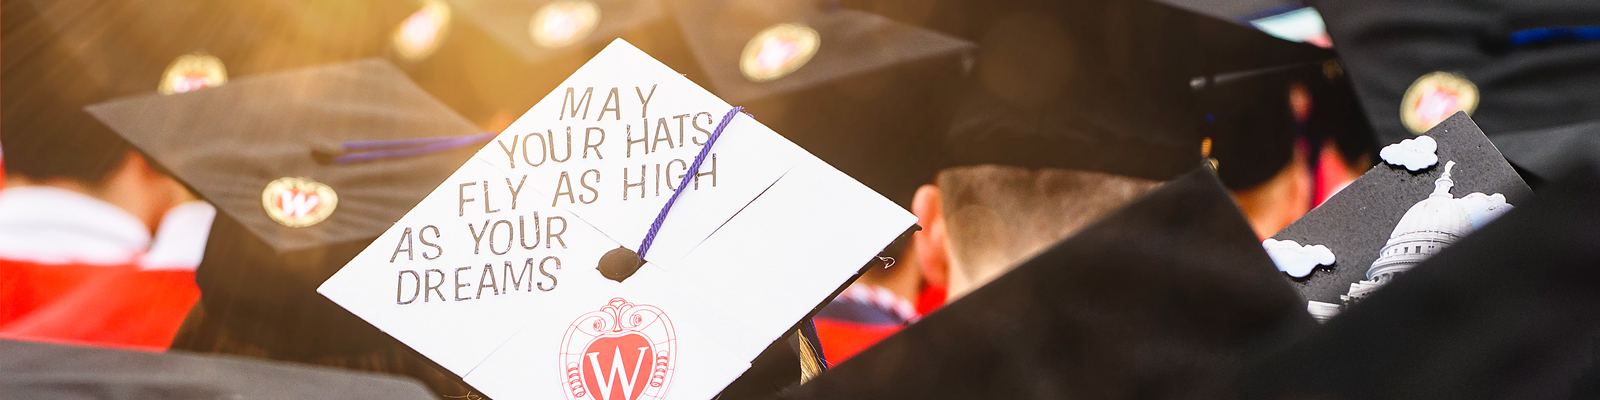 "UW–Madison decorated graduation caps with one that reads, ""May your hats fly as high as your dreams"""